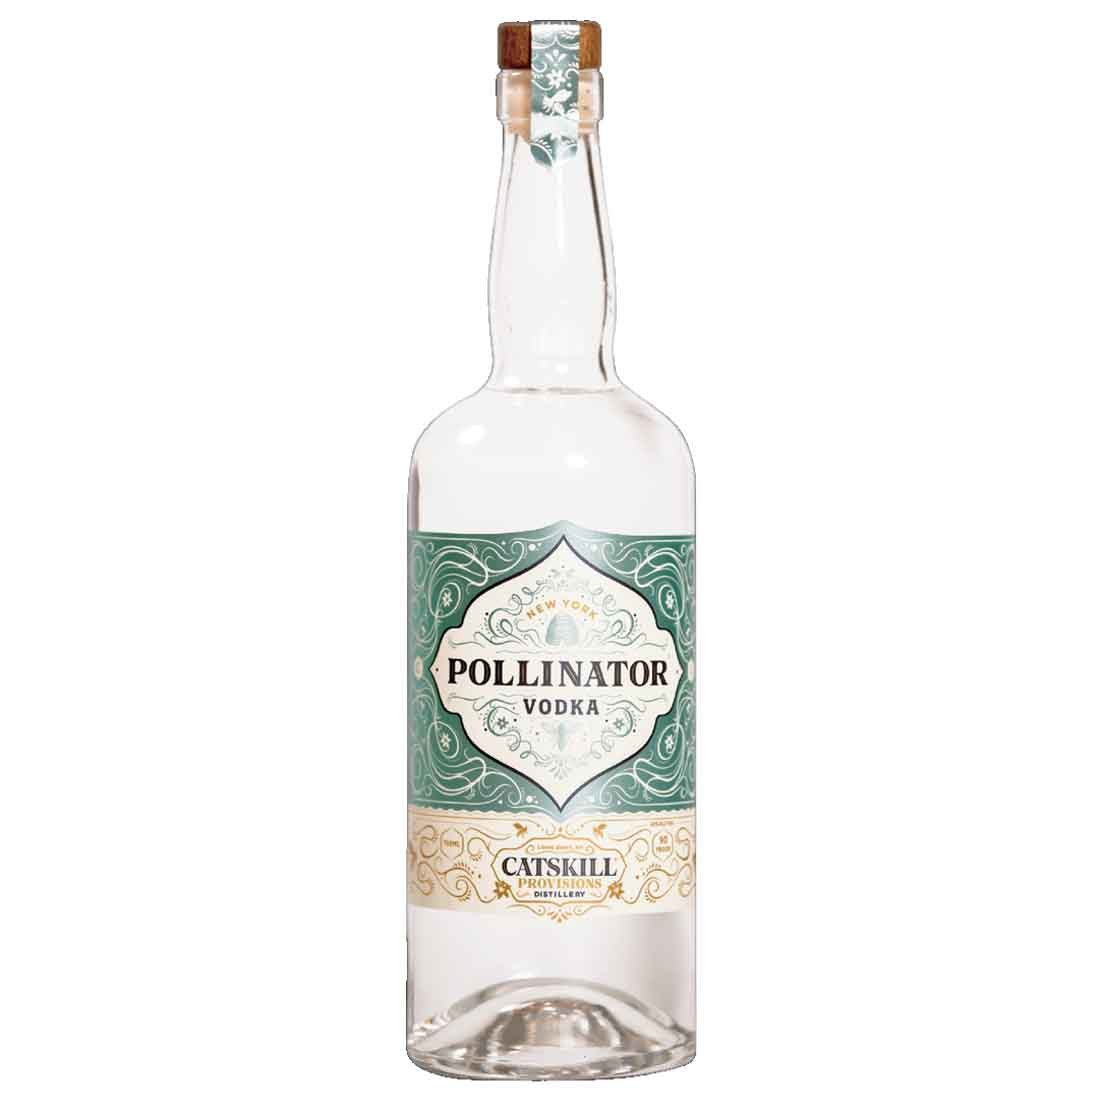 NY Pollinator Vodka 375or 750 mL